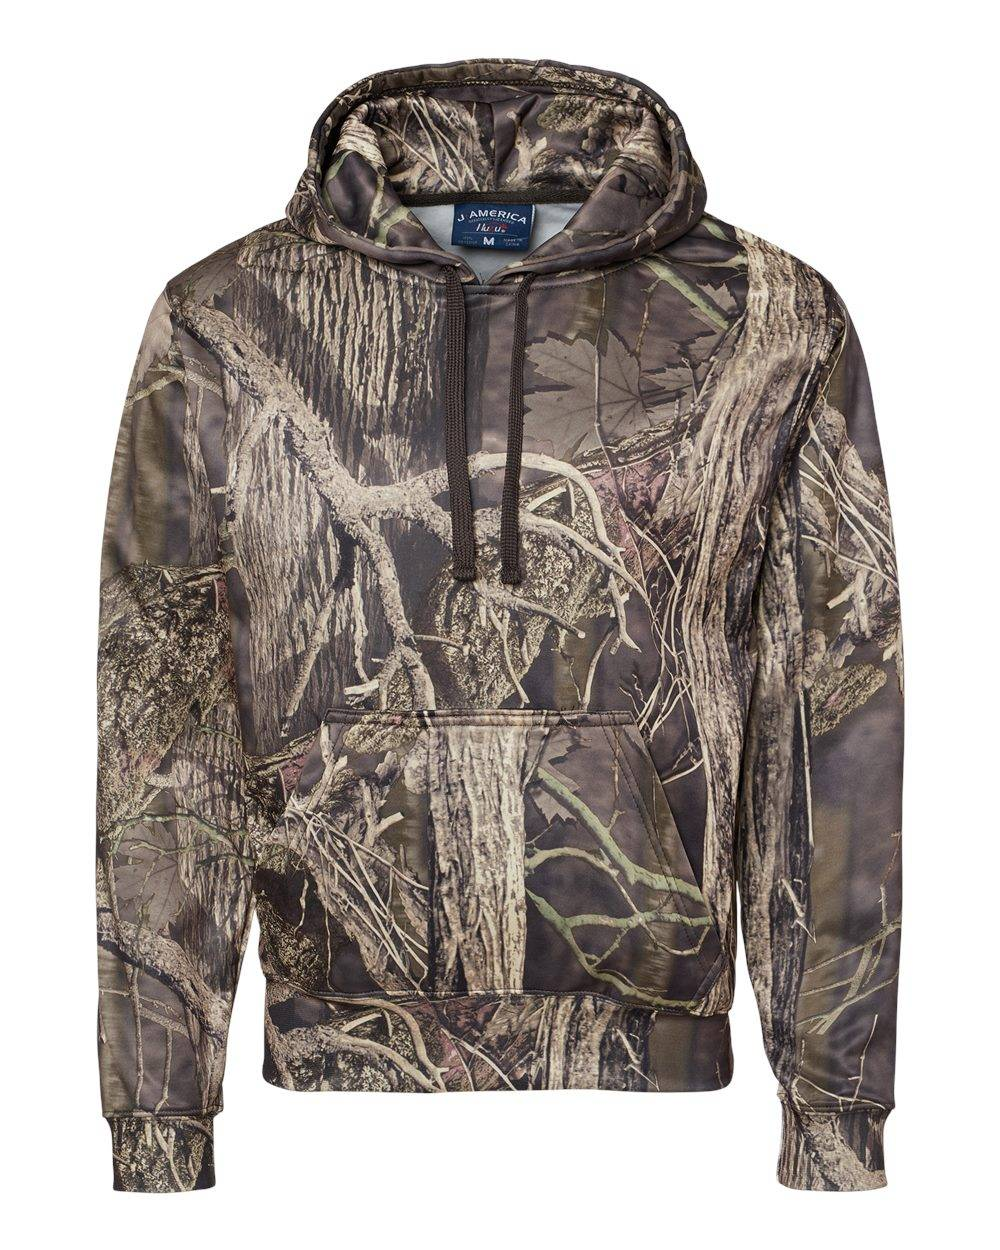 J. America - Polyester Tailgate Hooded Sweatshirt - 8615 - Outdoor Camo - 3X-Large